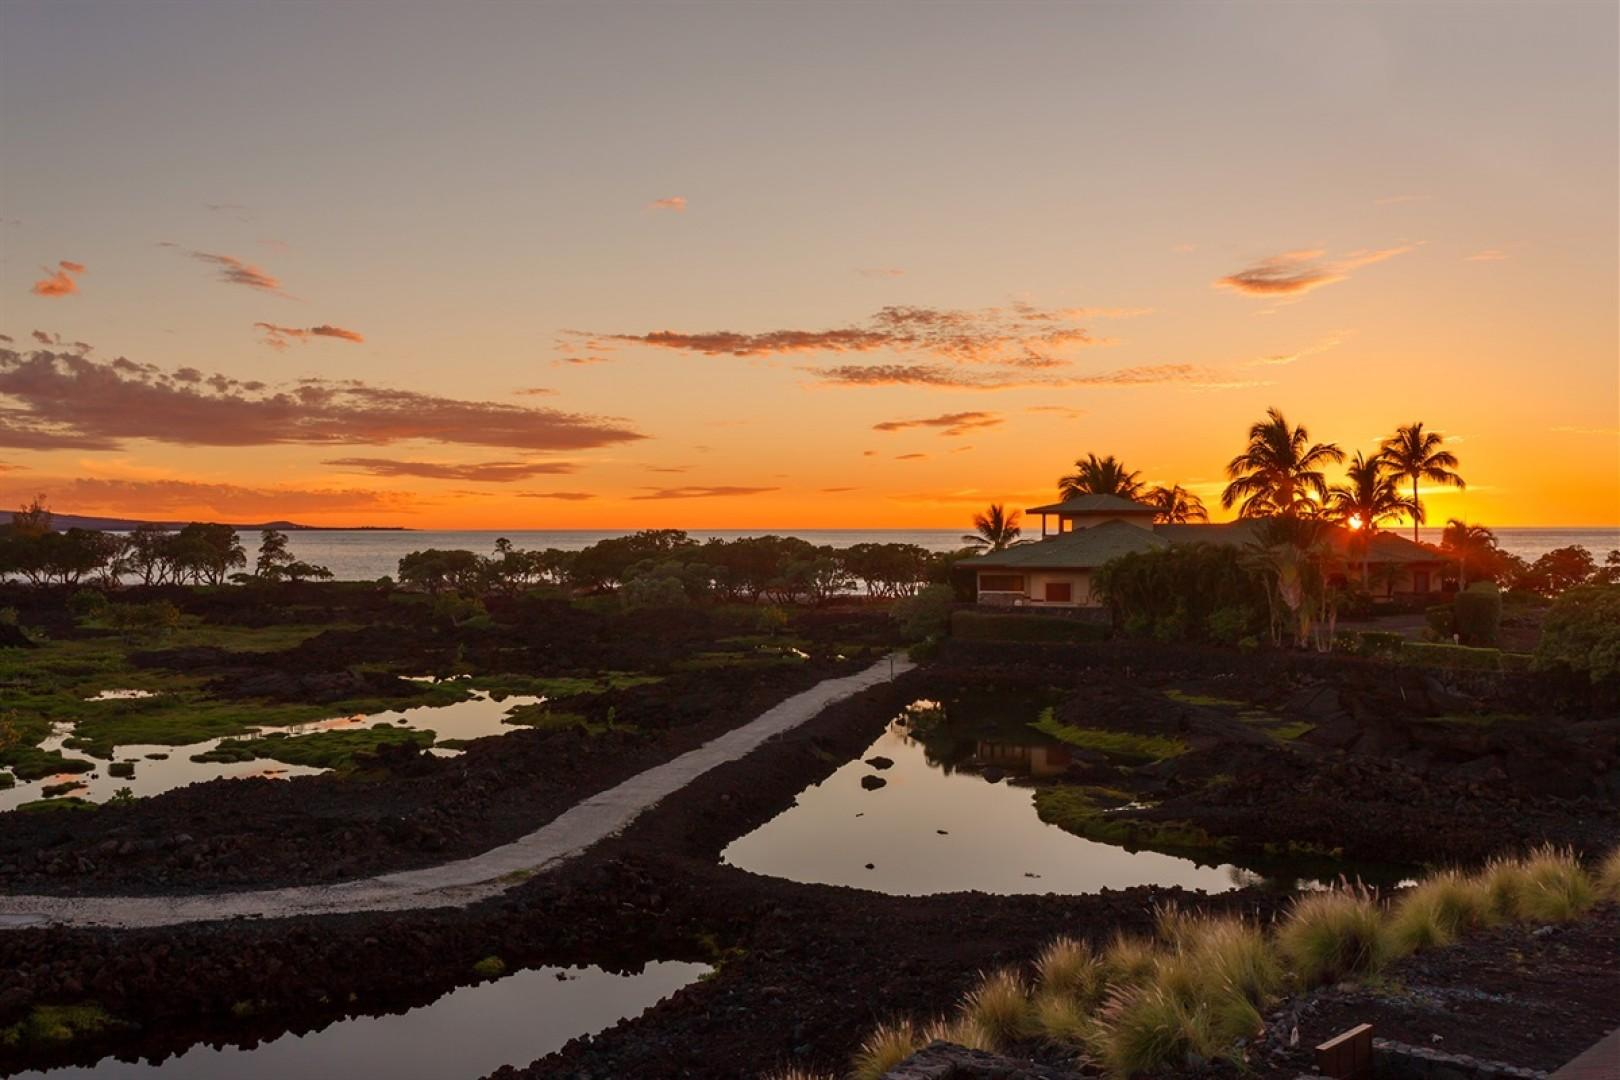 Sunset view of fish ponds with ocean beyond.